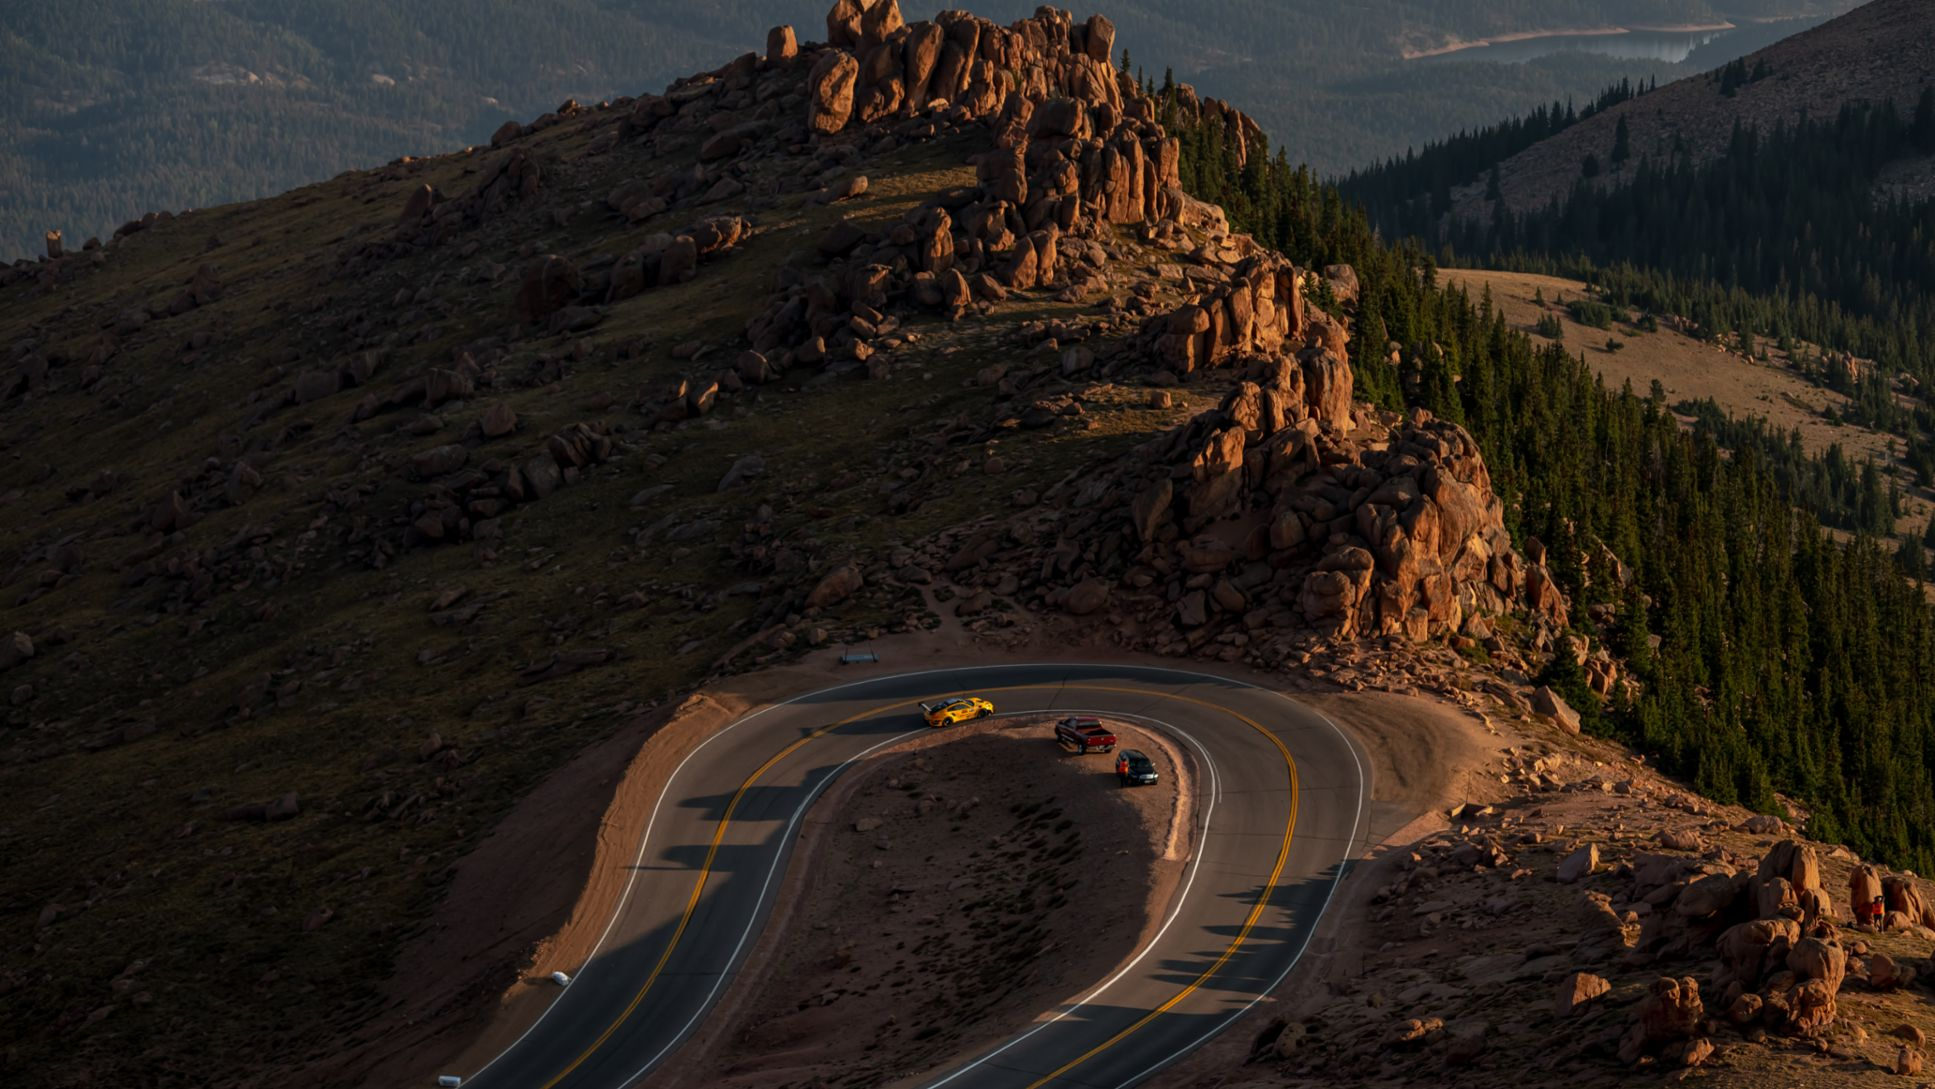 No. 911 Porsche 911 GT2 RS Clubsport, David Donohue, Pikes Peak, Wednesday Aug 26 2020, Photo by Marc Urbano